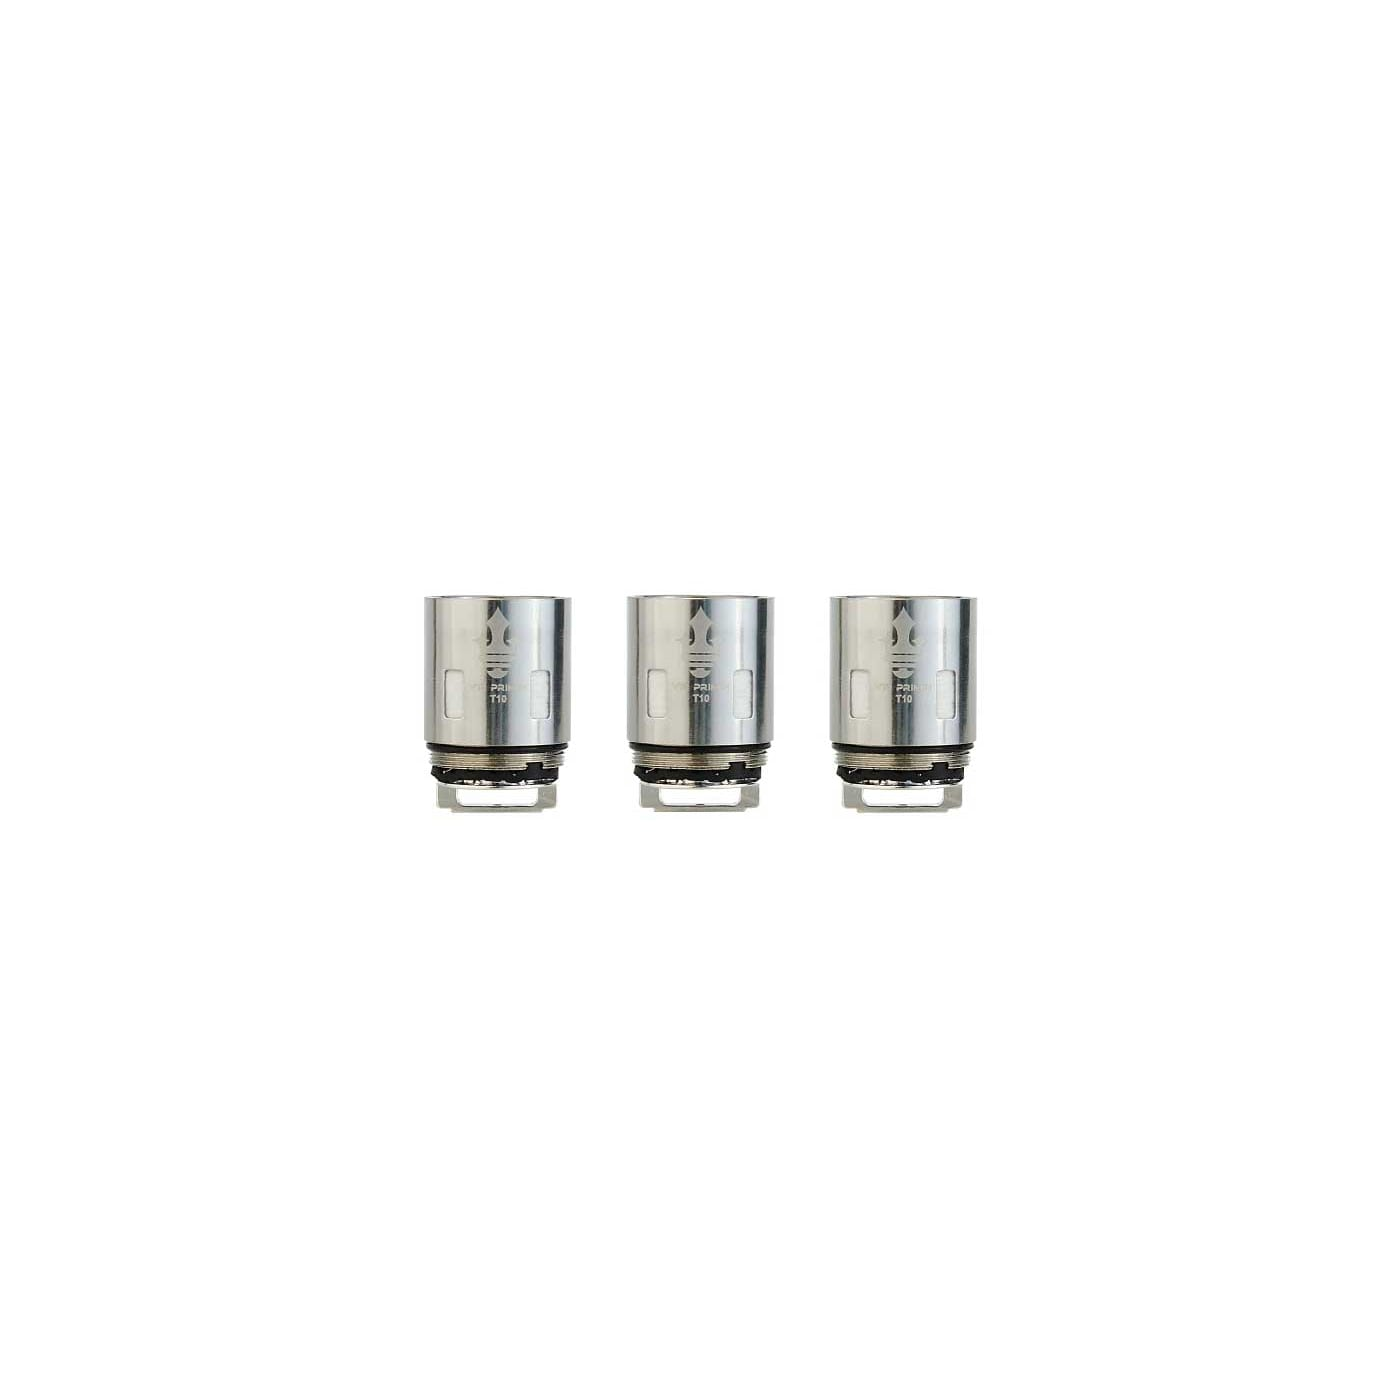 Smok TFV12 Prince T10 Replacement Coil - 3 Pack - 0.12 Ohm